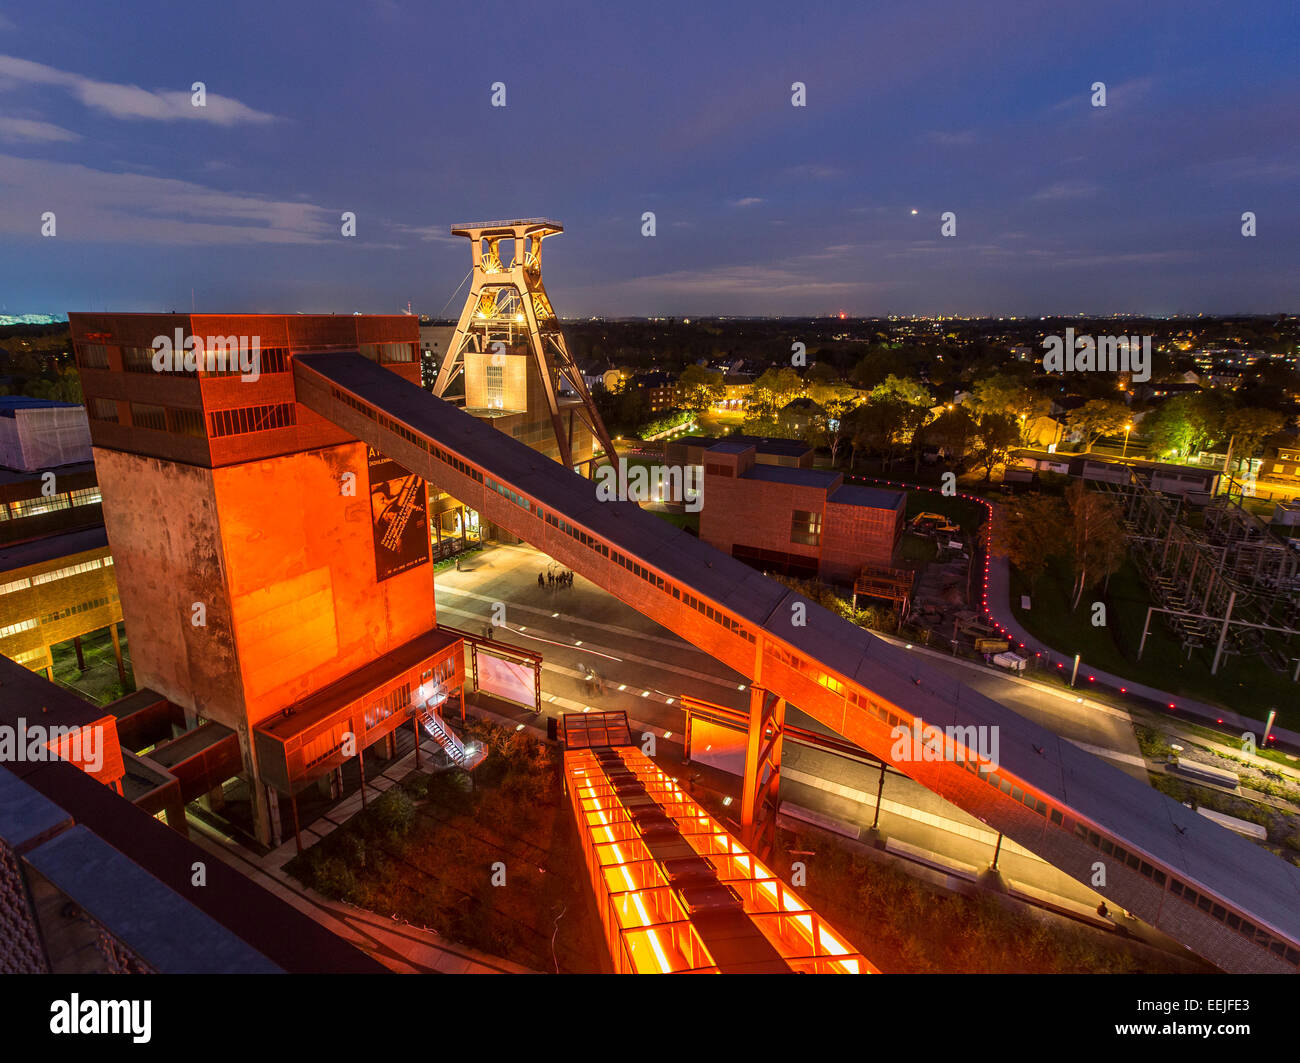 Zeche Zollverein, UNESCO world heritage site, former, the biggest coal mine in the world, Essen, Germany - Stock Image